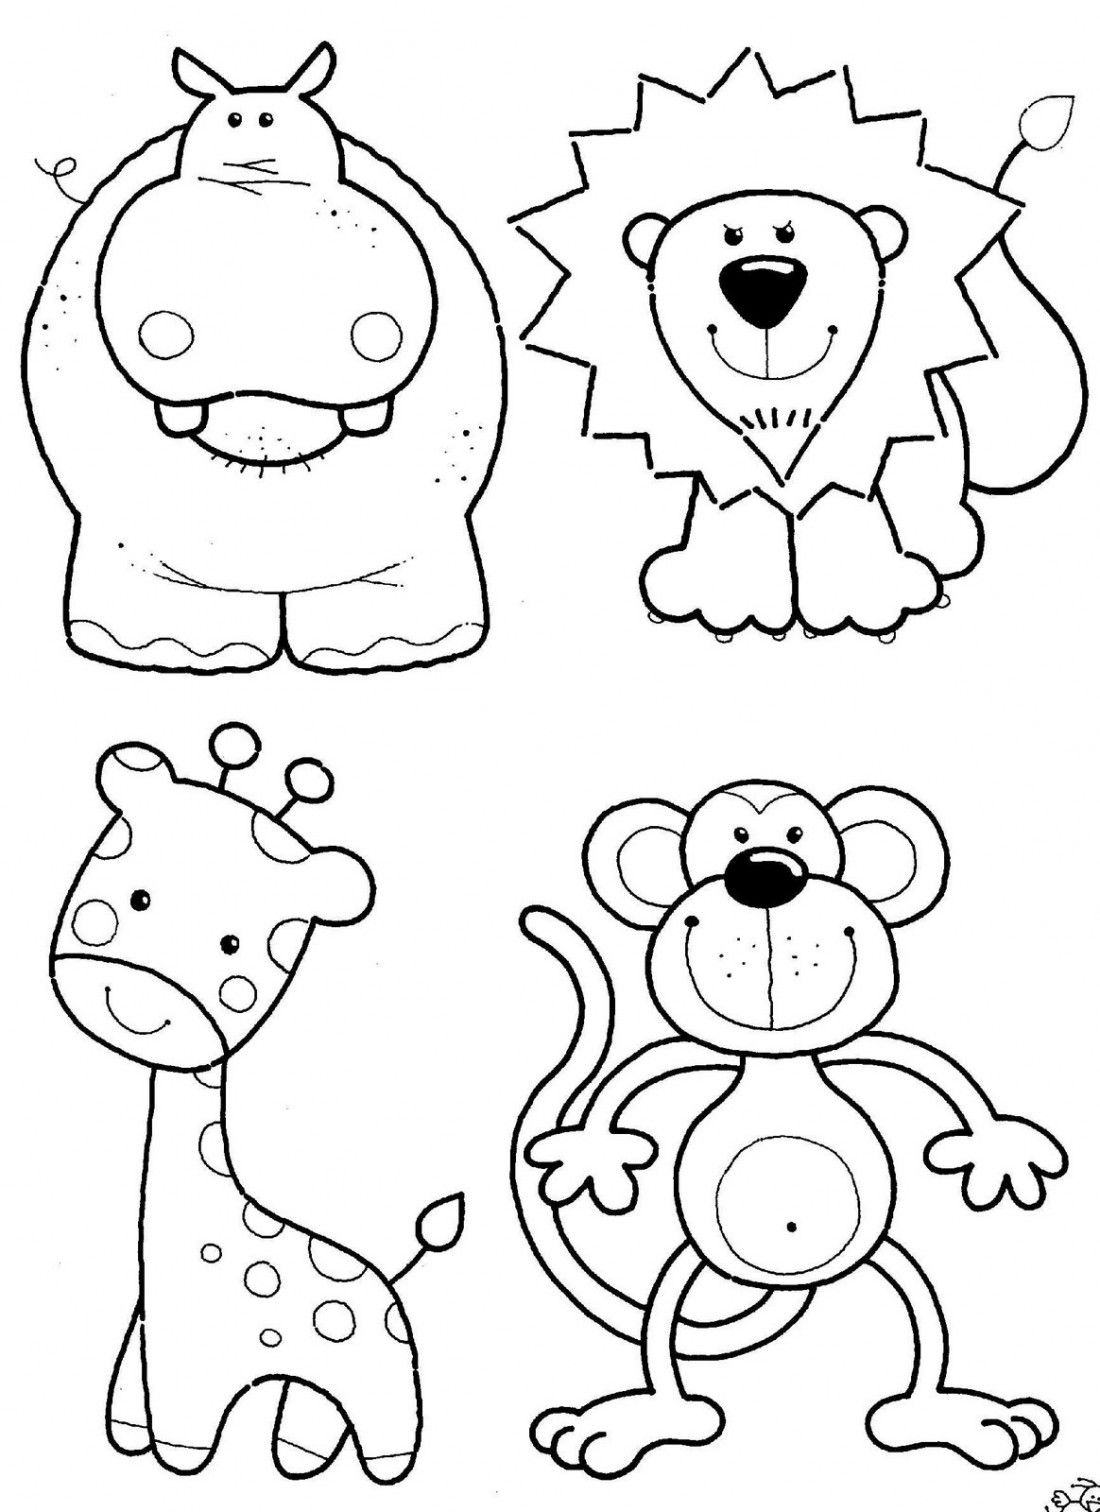 free animal coloring pages kids id color or paint these and use them - Free Color Sheets For Kids